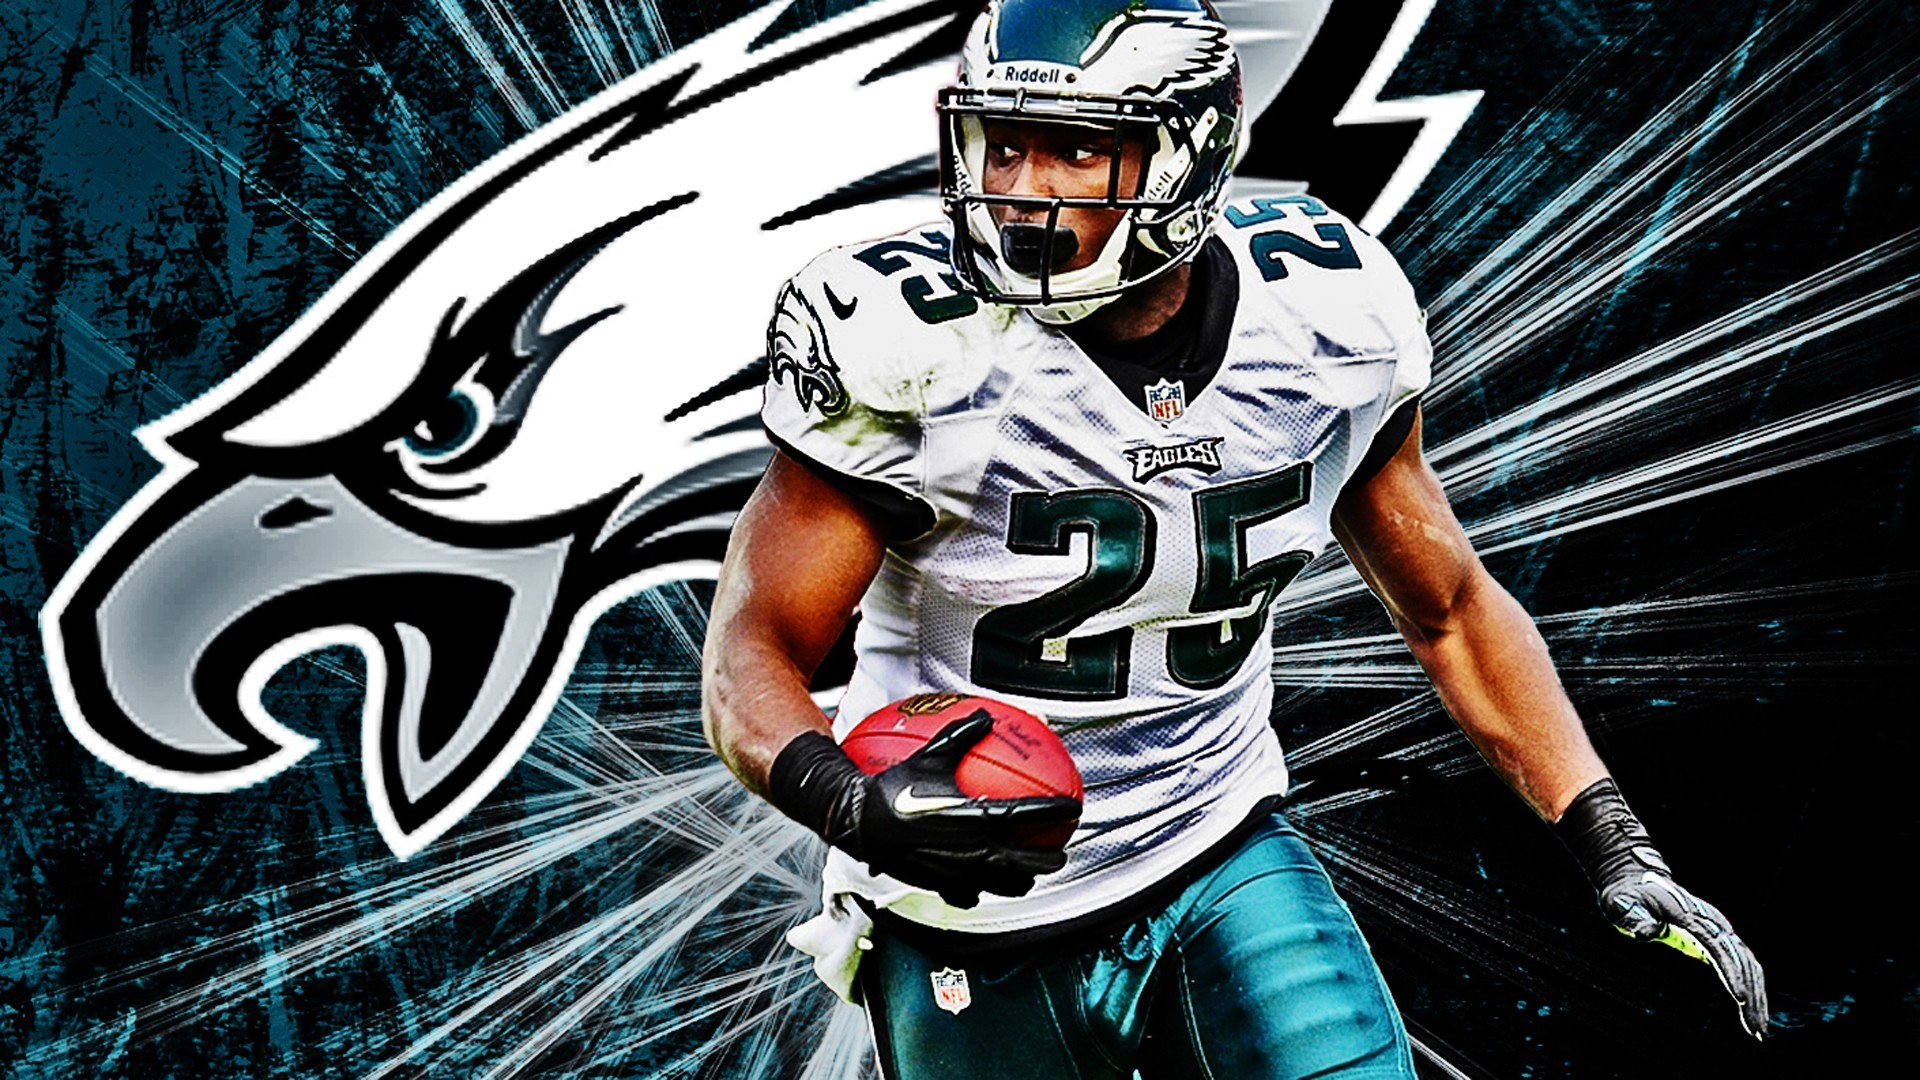 1920x1080 download philadelphia eagles wallpaper 1920x1200 image · 1920x1200 download philadelphia  eagles wallpaper 1920x1200 image